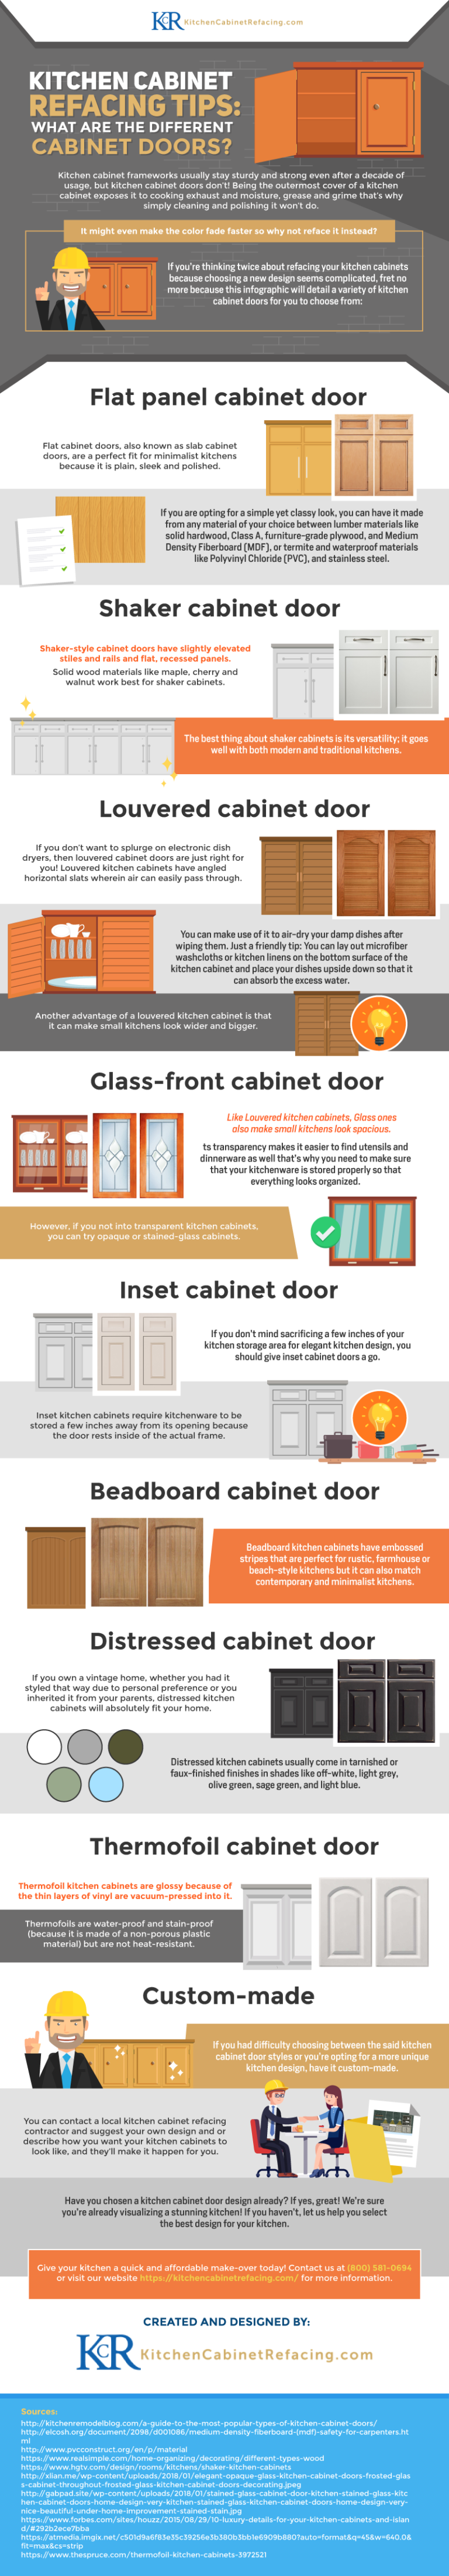 Kitchen-Cabinet-Refacing-Tips-What-Are-the-Different-Cabinet-Doors.png